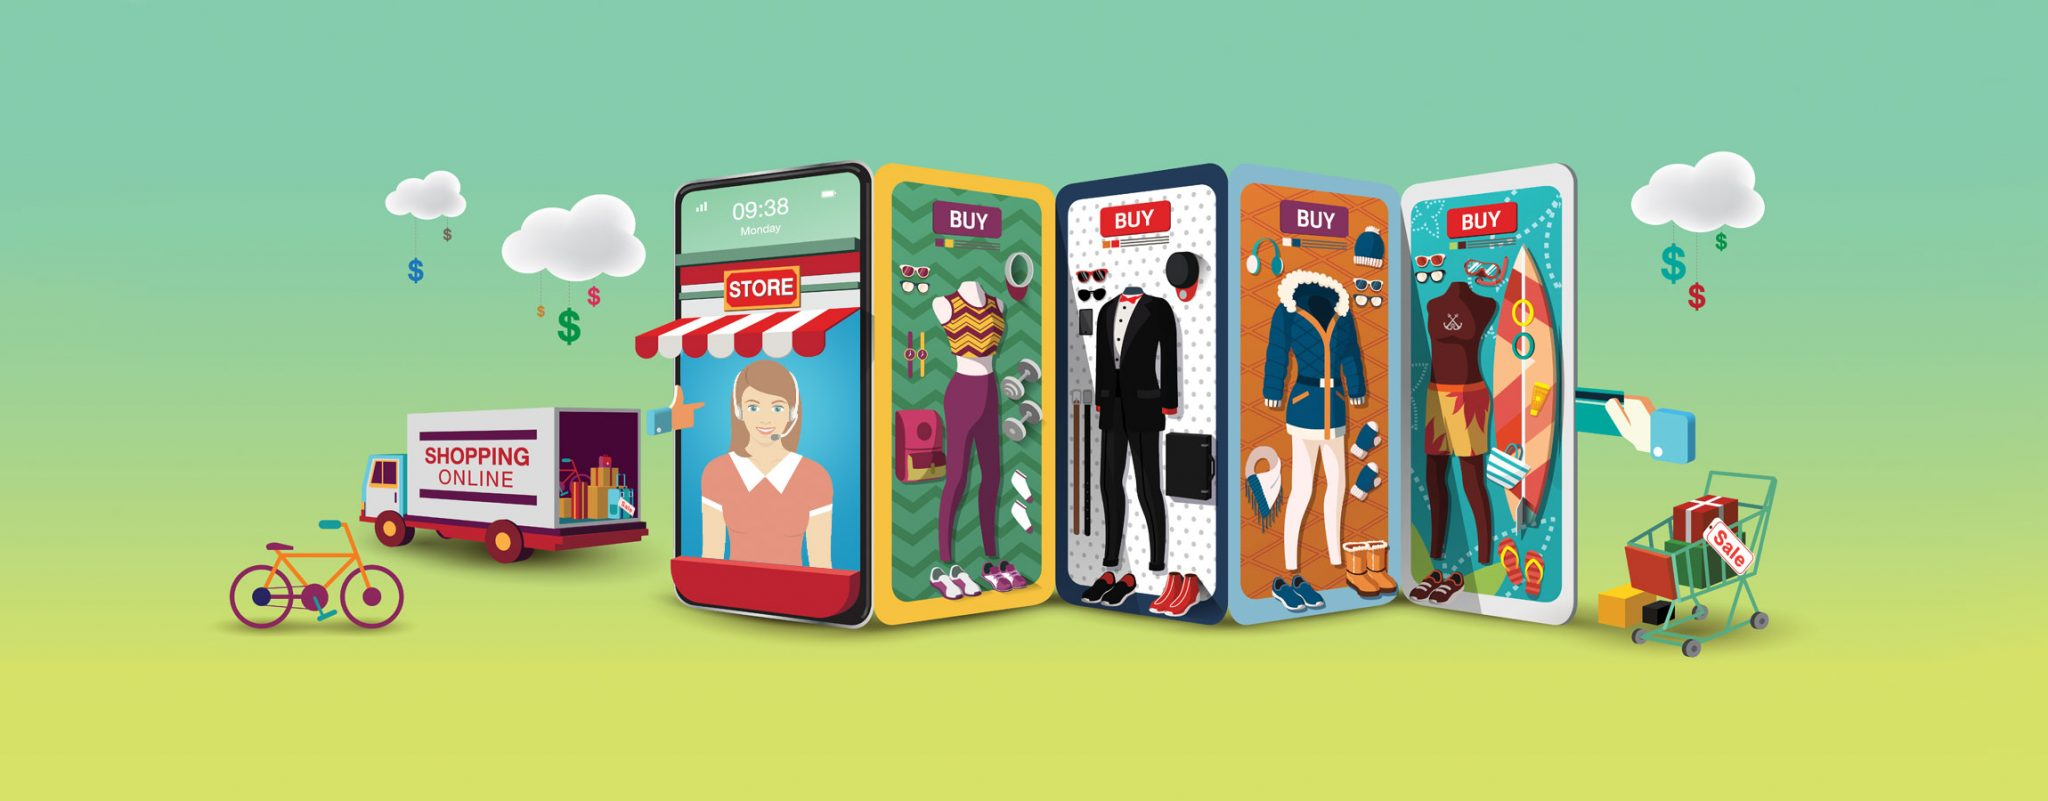 How can multilingual call centers help online retail brands?